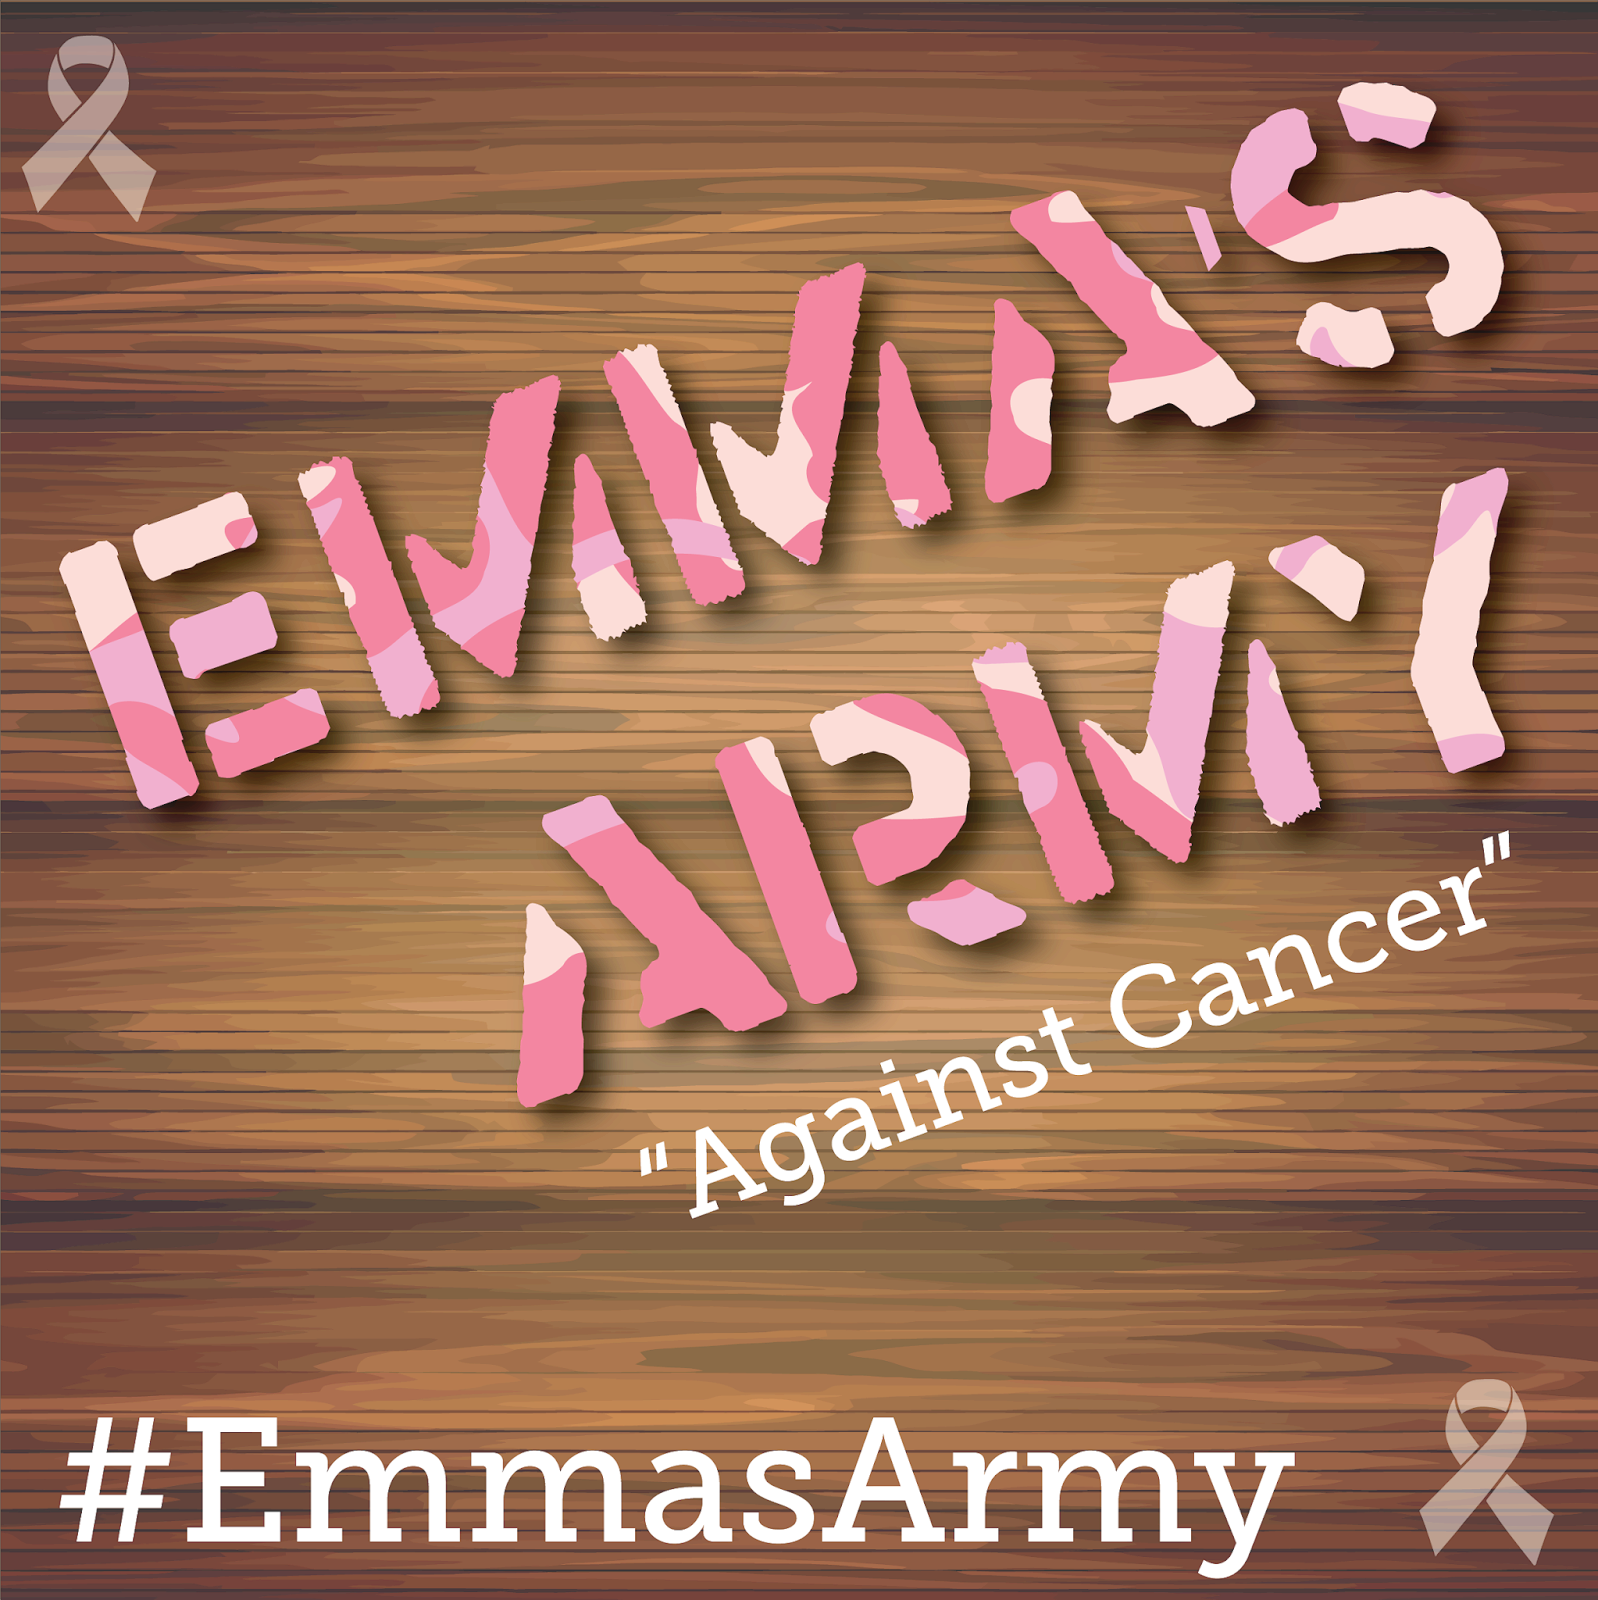 emmas army fight against cancer